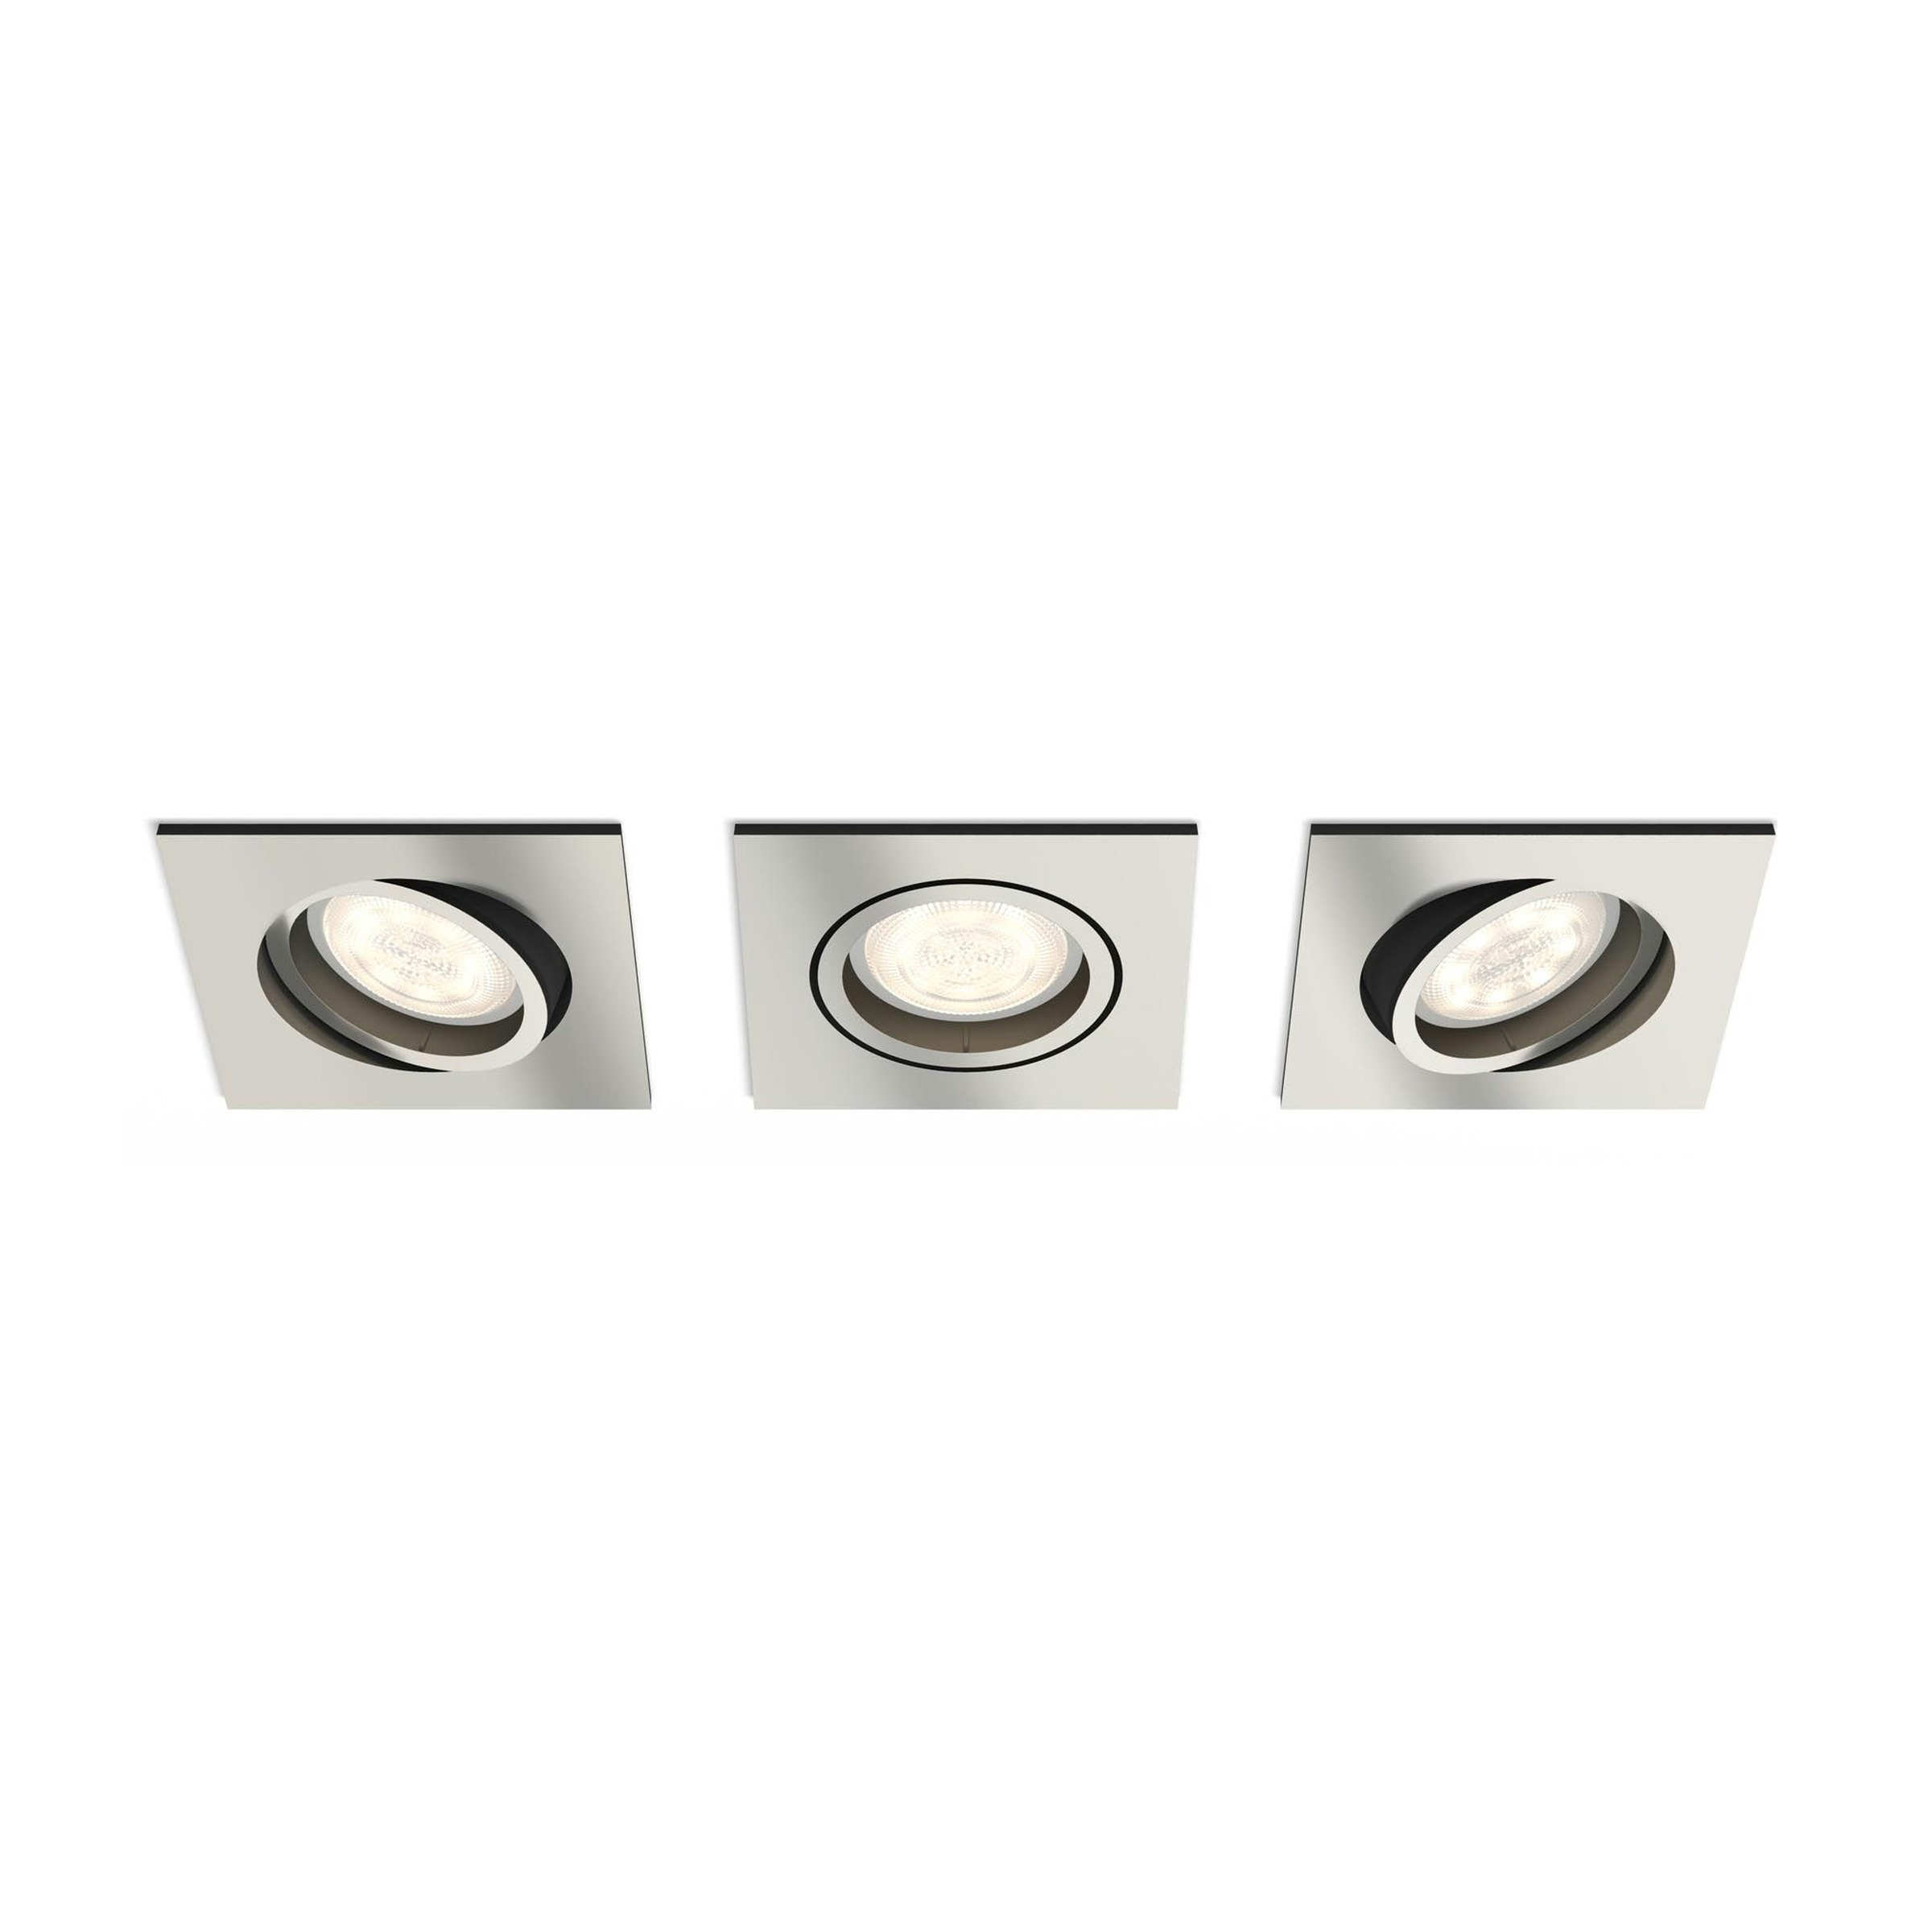 Philips Lighting Shellbark 5039317P0 LED-inbouwlamp Set van 3 13.5 W Warm-wit Nikkel (mat)